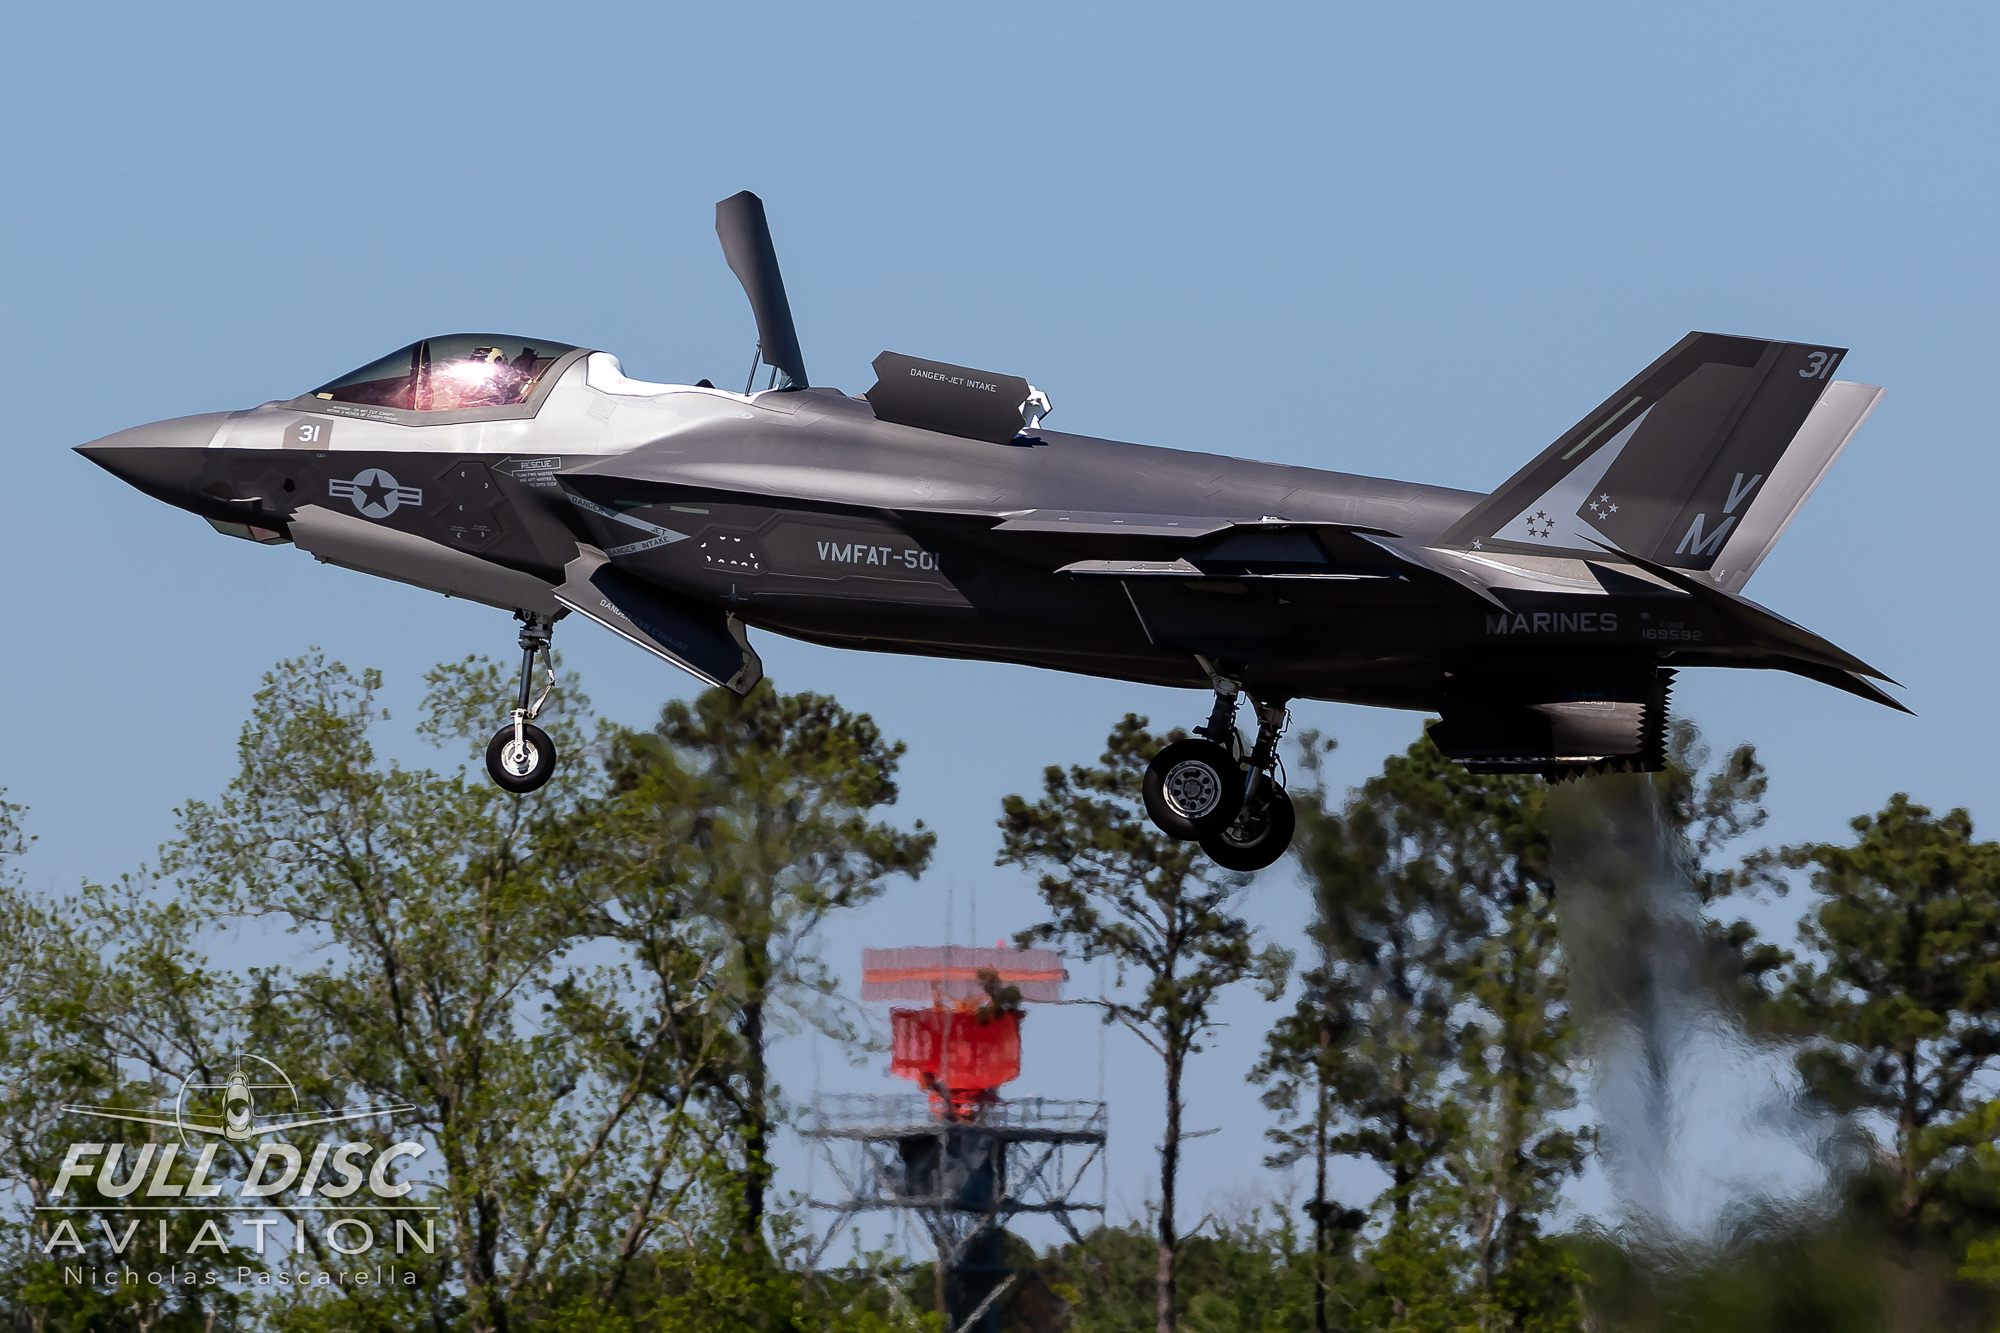 f35_f35b_hover_nicholaspascarella_fulldiscavation_aviation_airshow.jpg